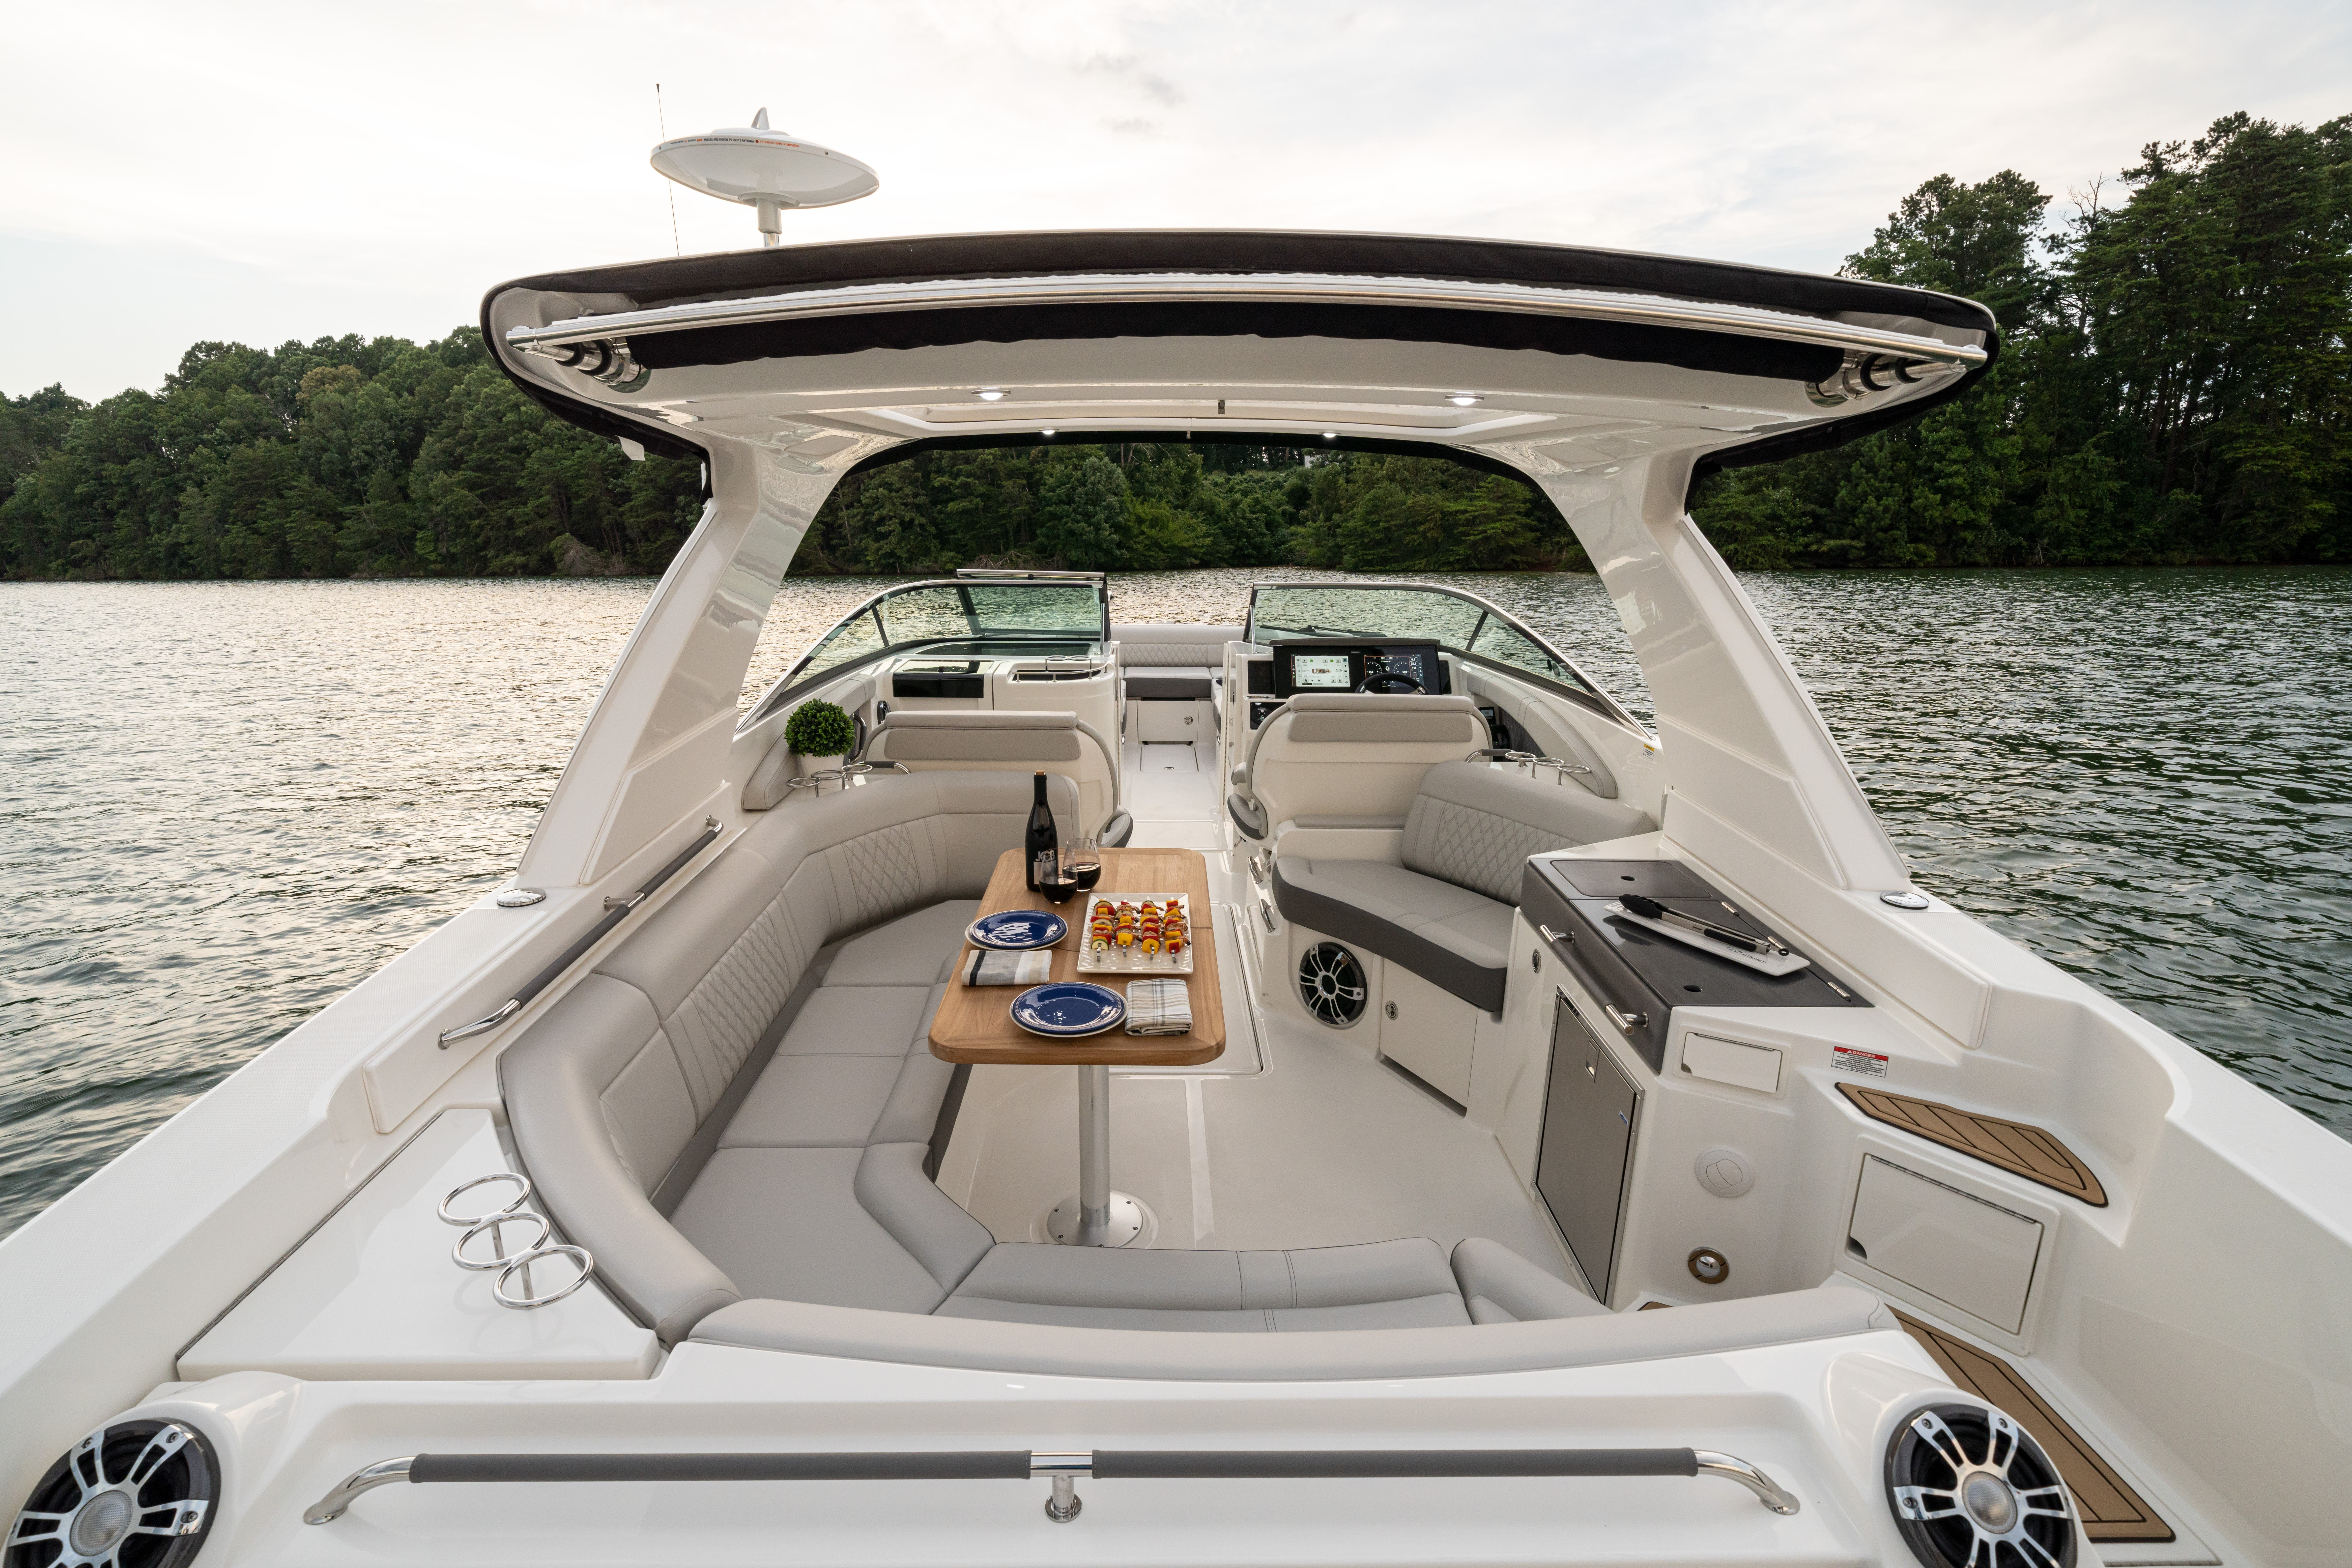 2022 Sea Ray boat for sale, model of the boat is 350slx & Image # 9 of 11